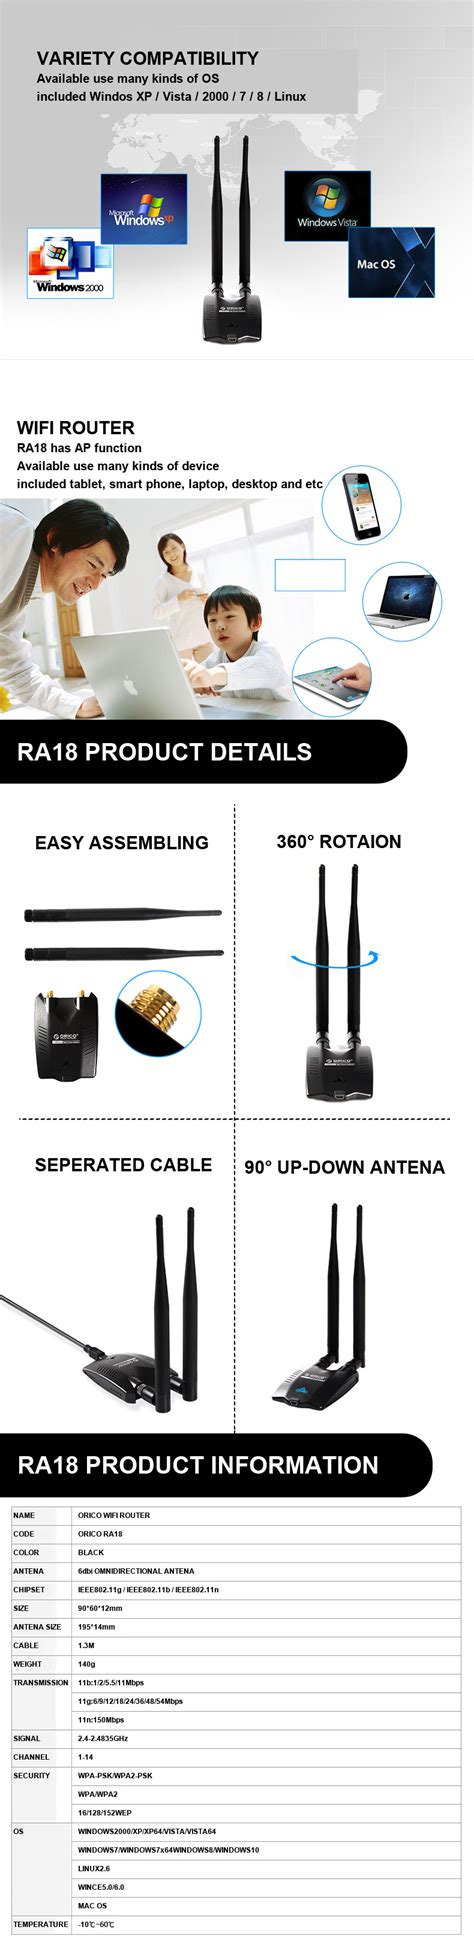 Sale Tp Link Wr940n 450mbps Wireless N Router 4port 3 Antena Fixed buy wifi extender router wf re2 ra18 wifi range